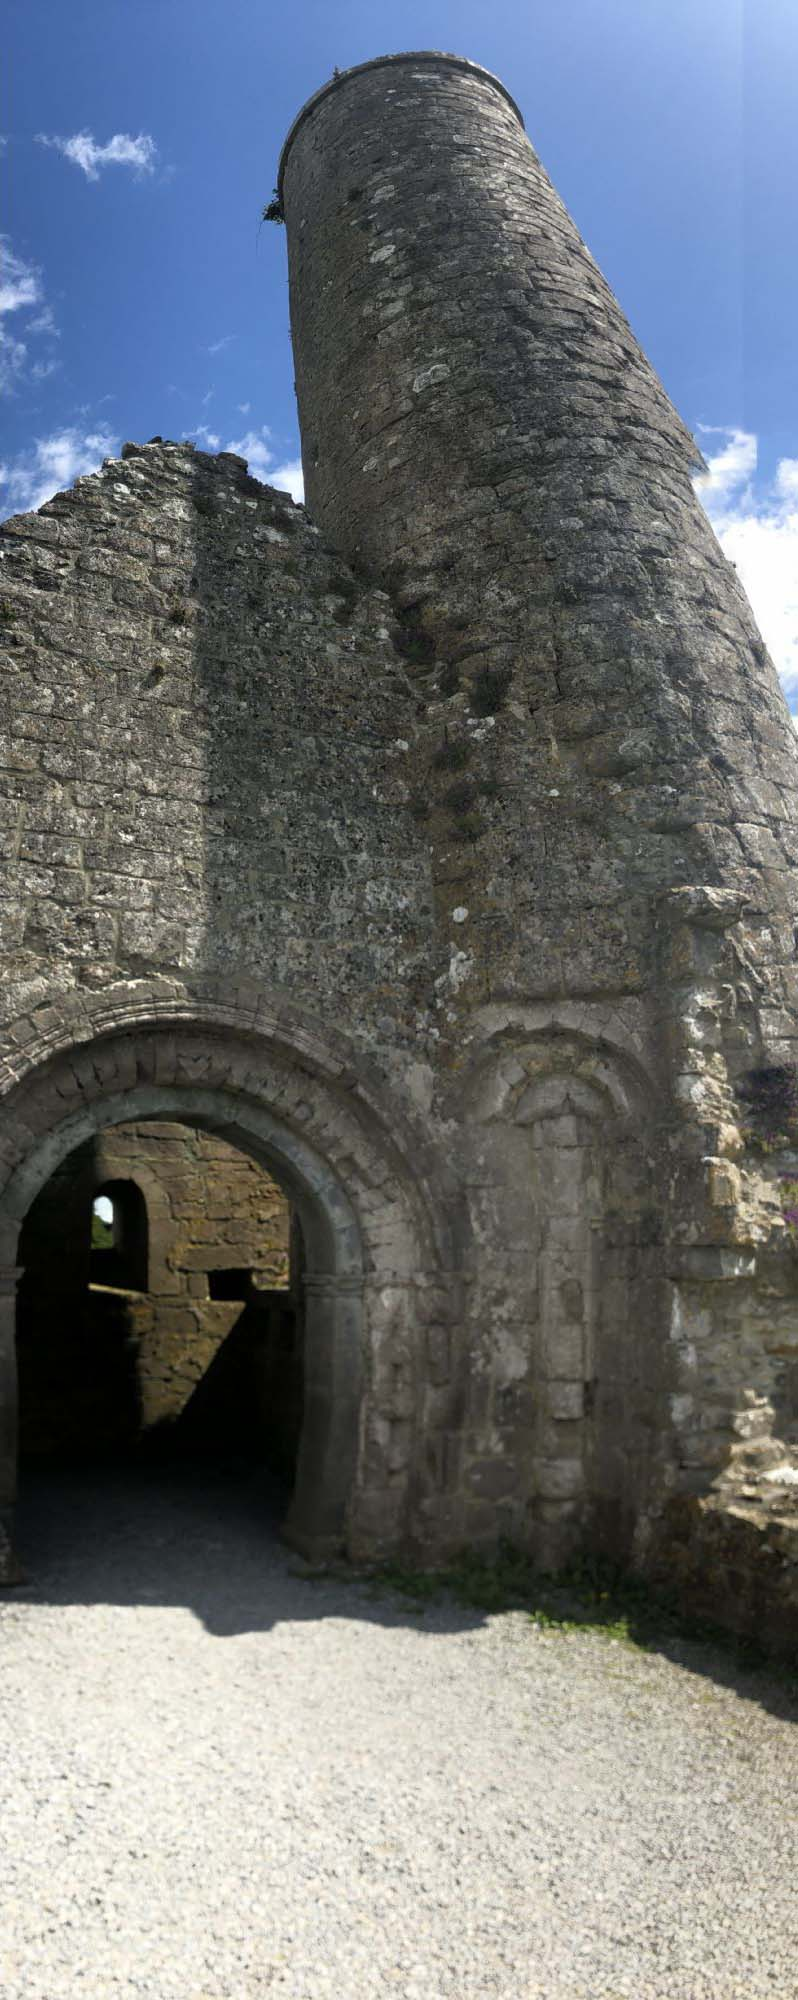 Tower at Clonmacnoise.